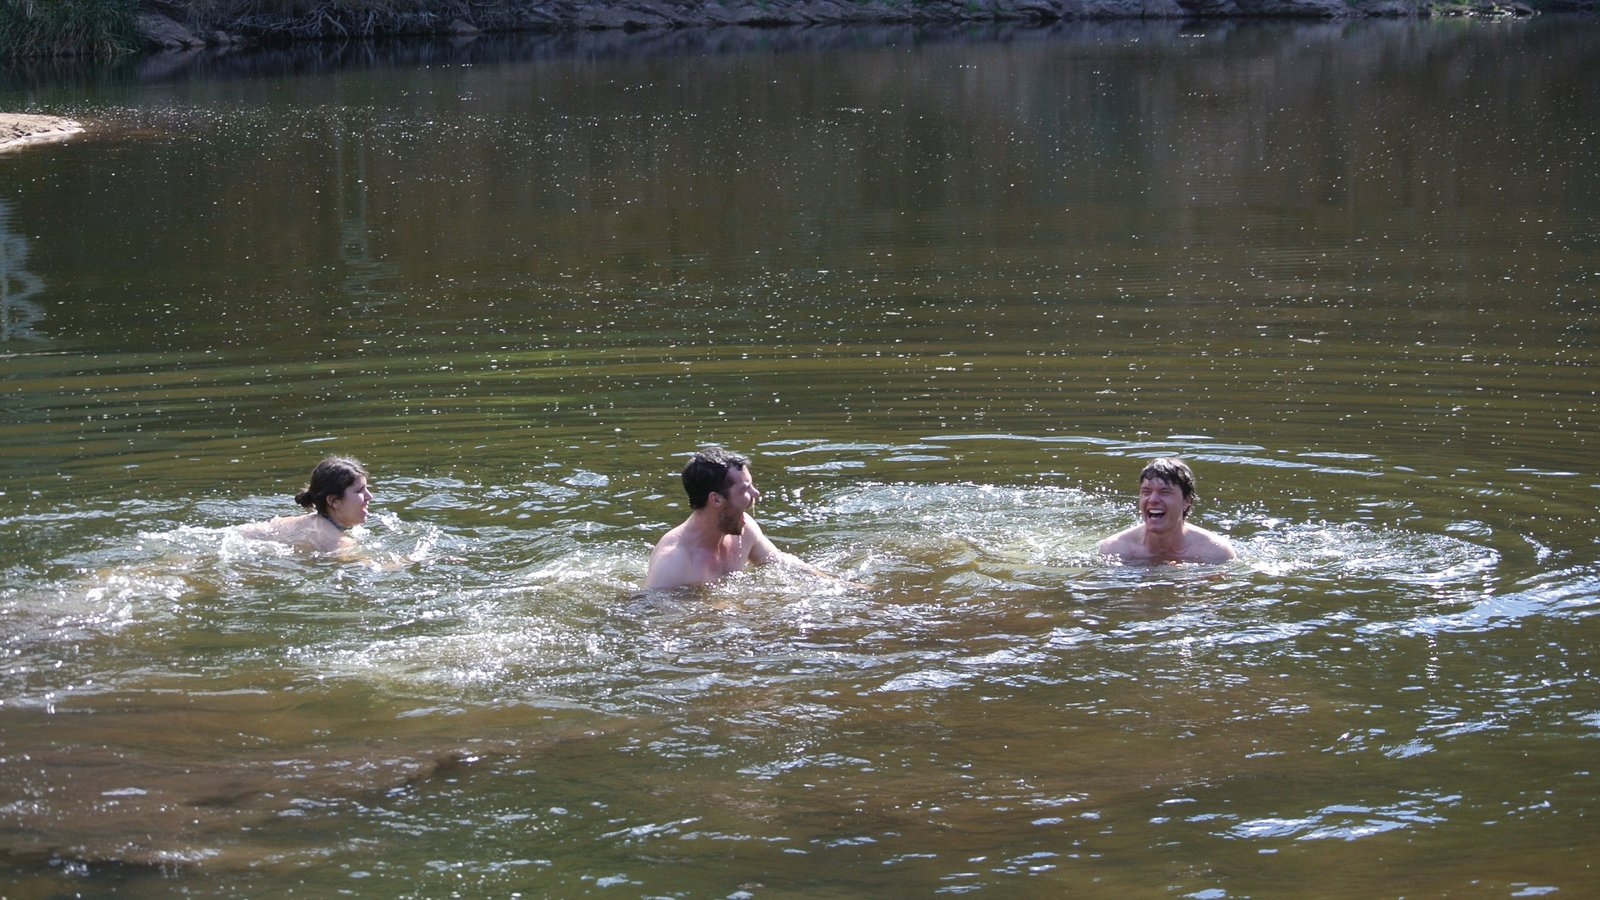 Uluru showing swimming and a river or creek as well as a small group of people